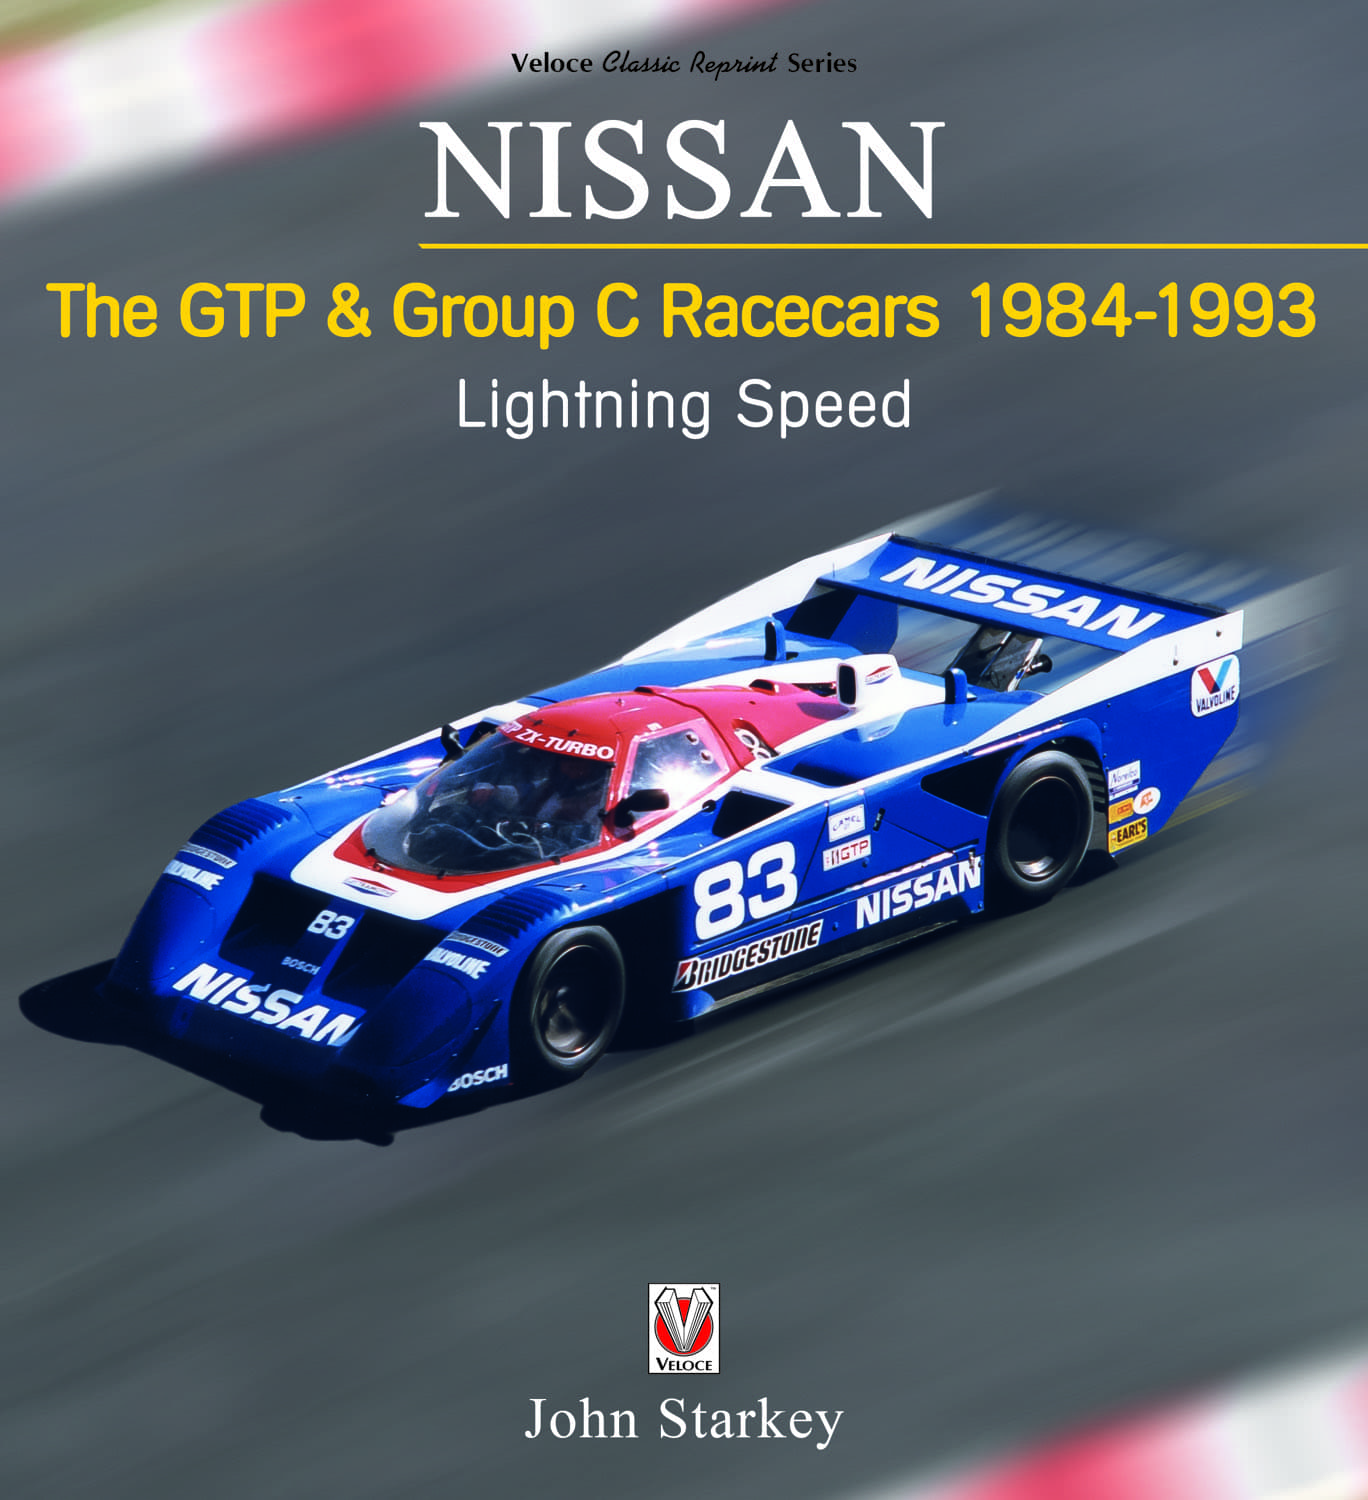 Nissan GTP & Group C cars cover